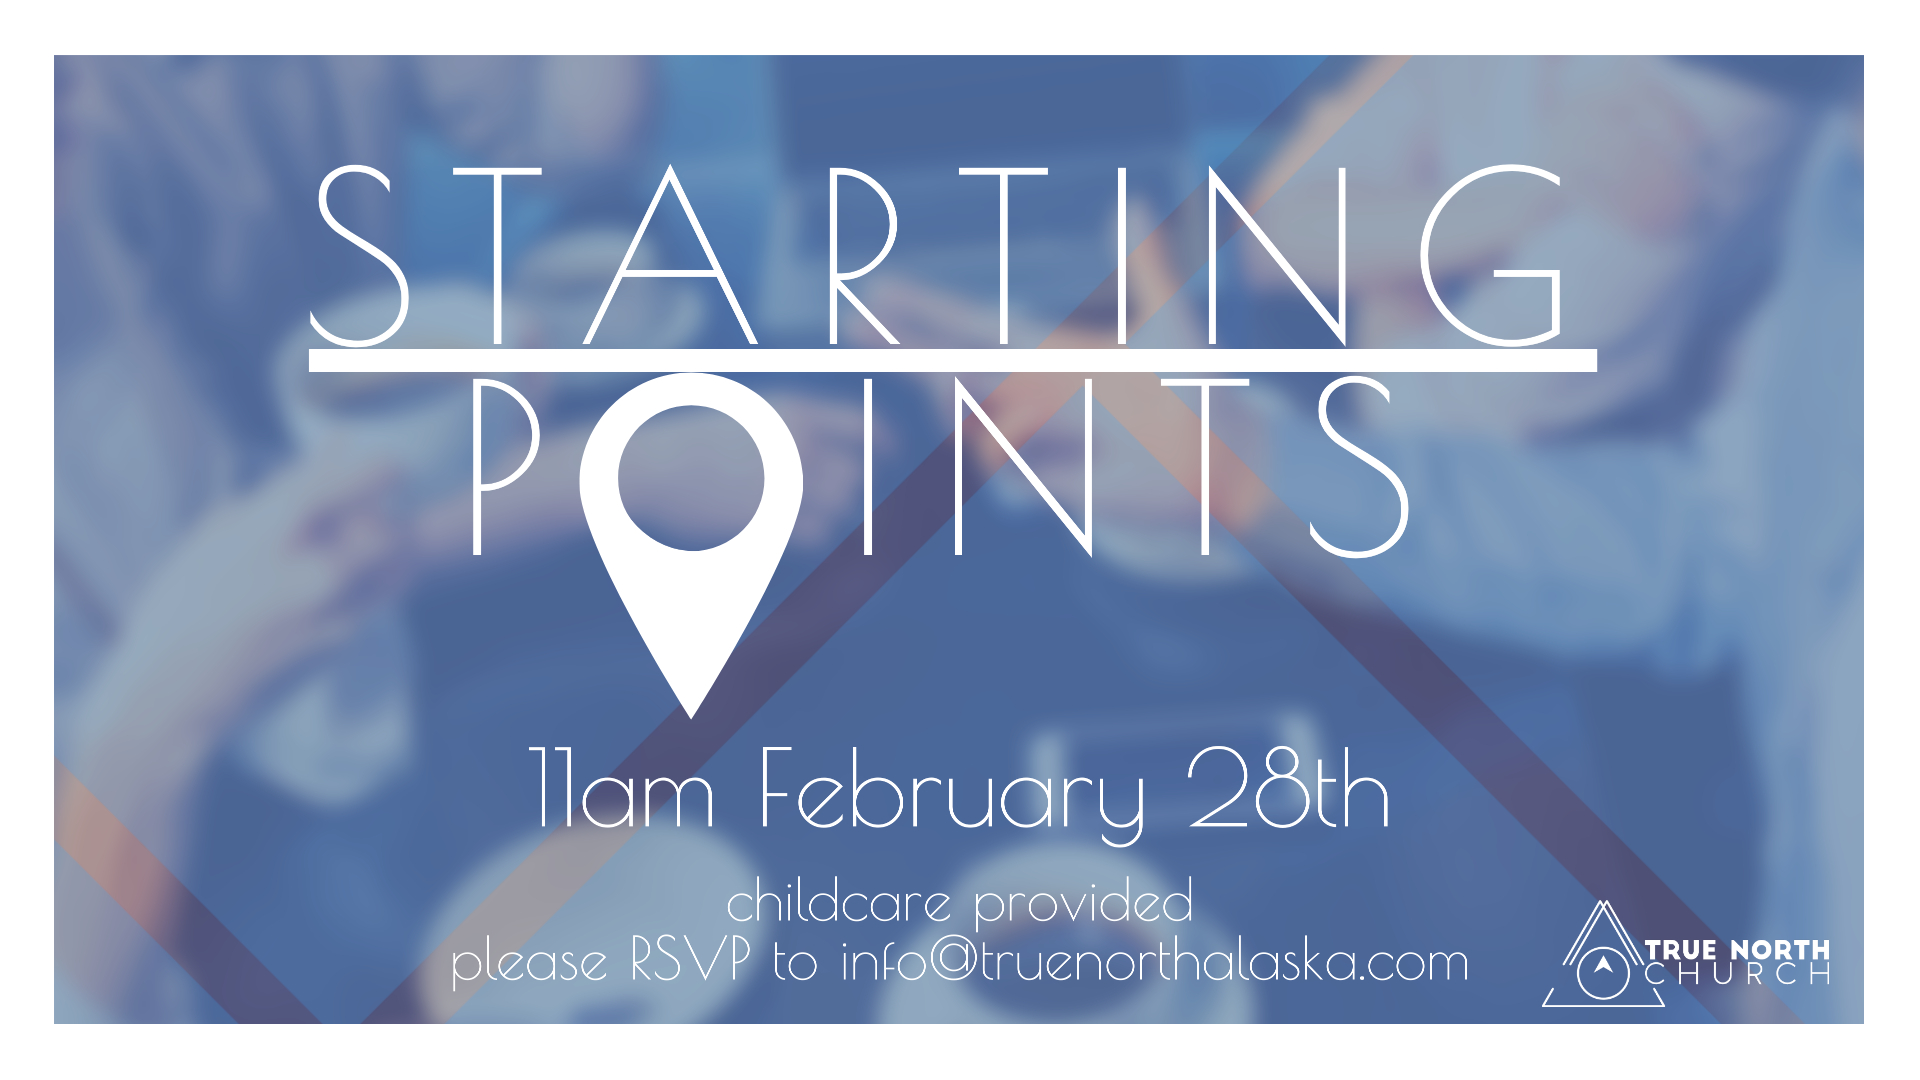 Starting Points Announcement